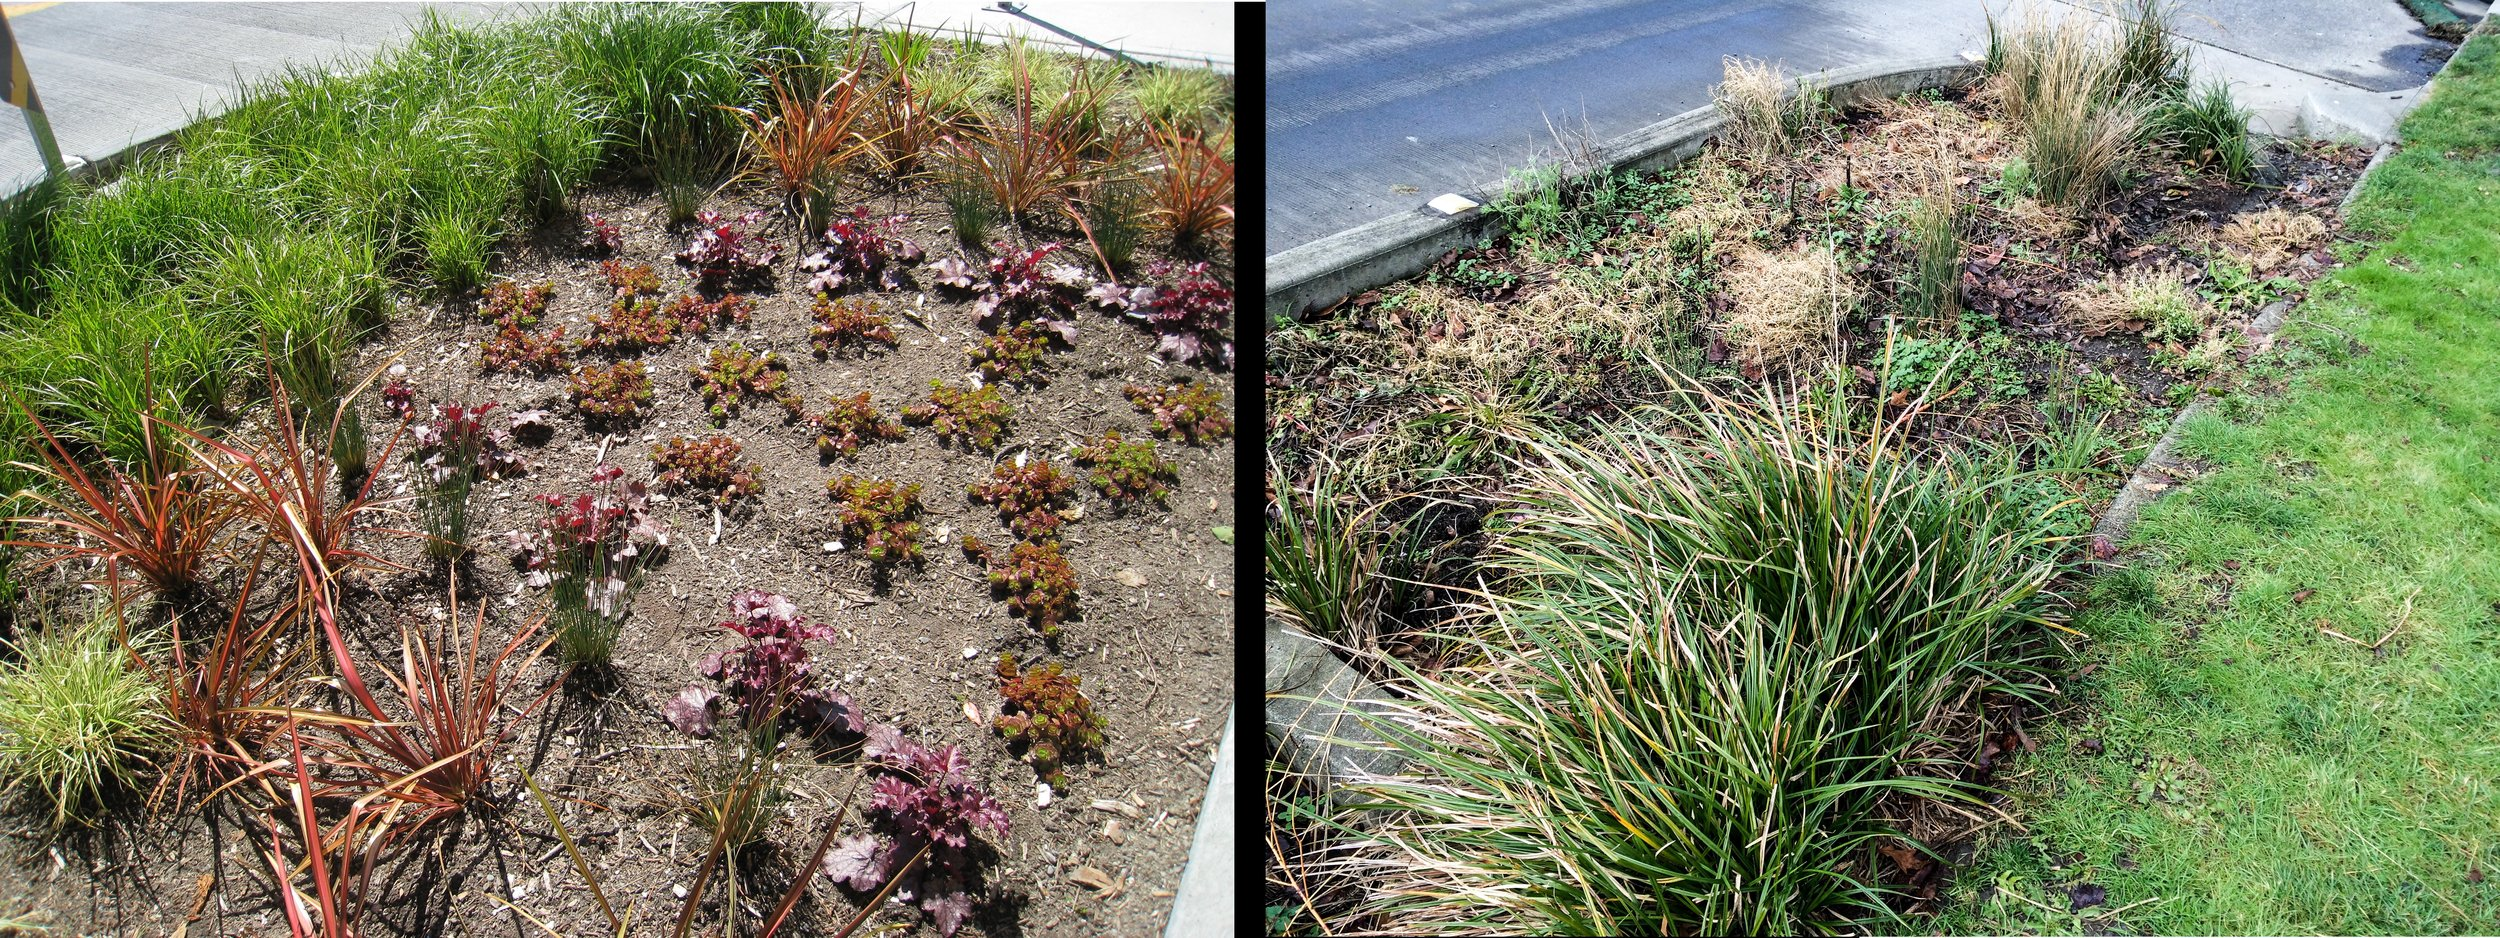 Rain gardens at the NE corner of 14th Ave NW and NW 58th in 2009 (left) and today (right)